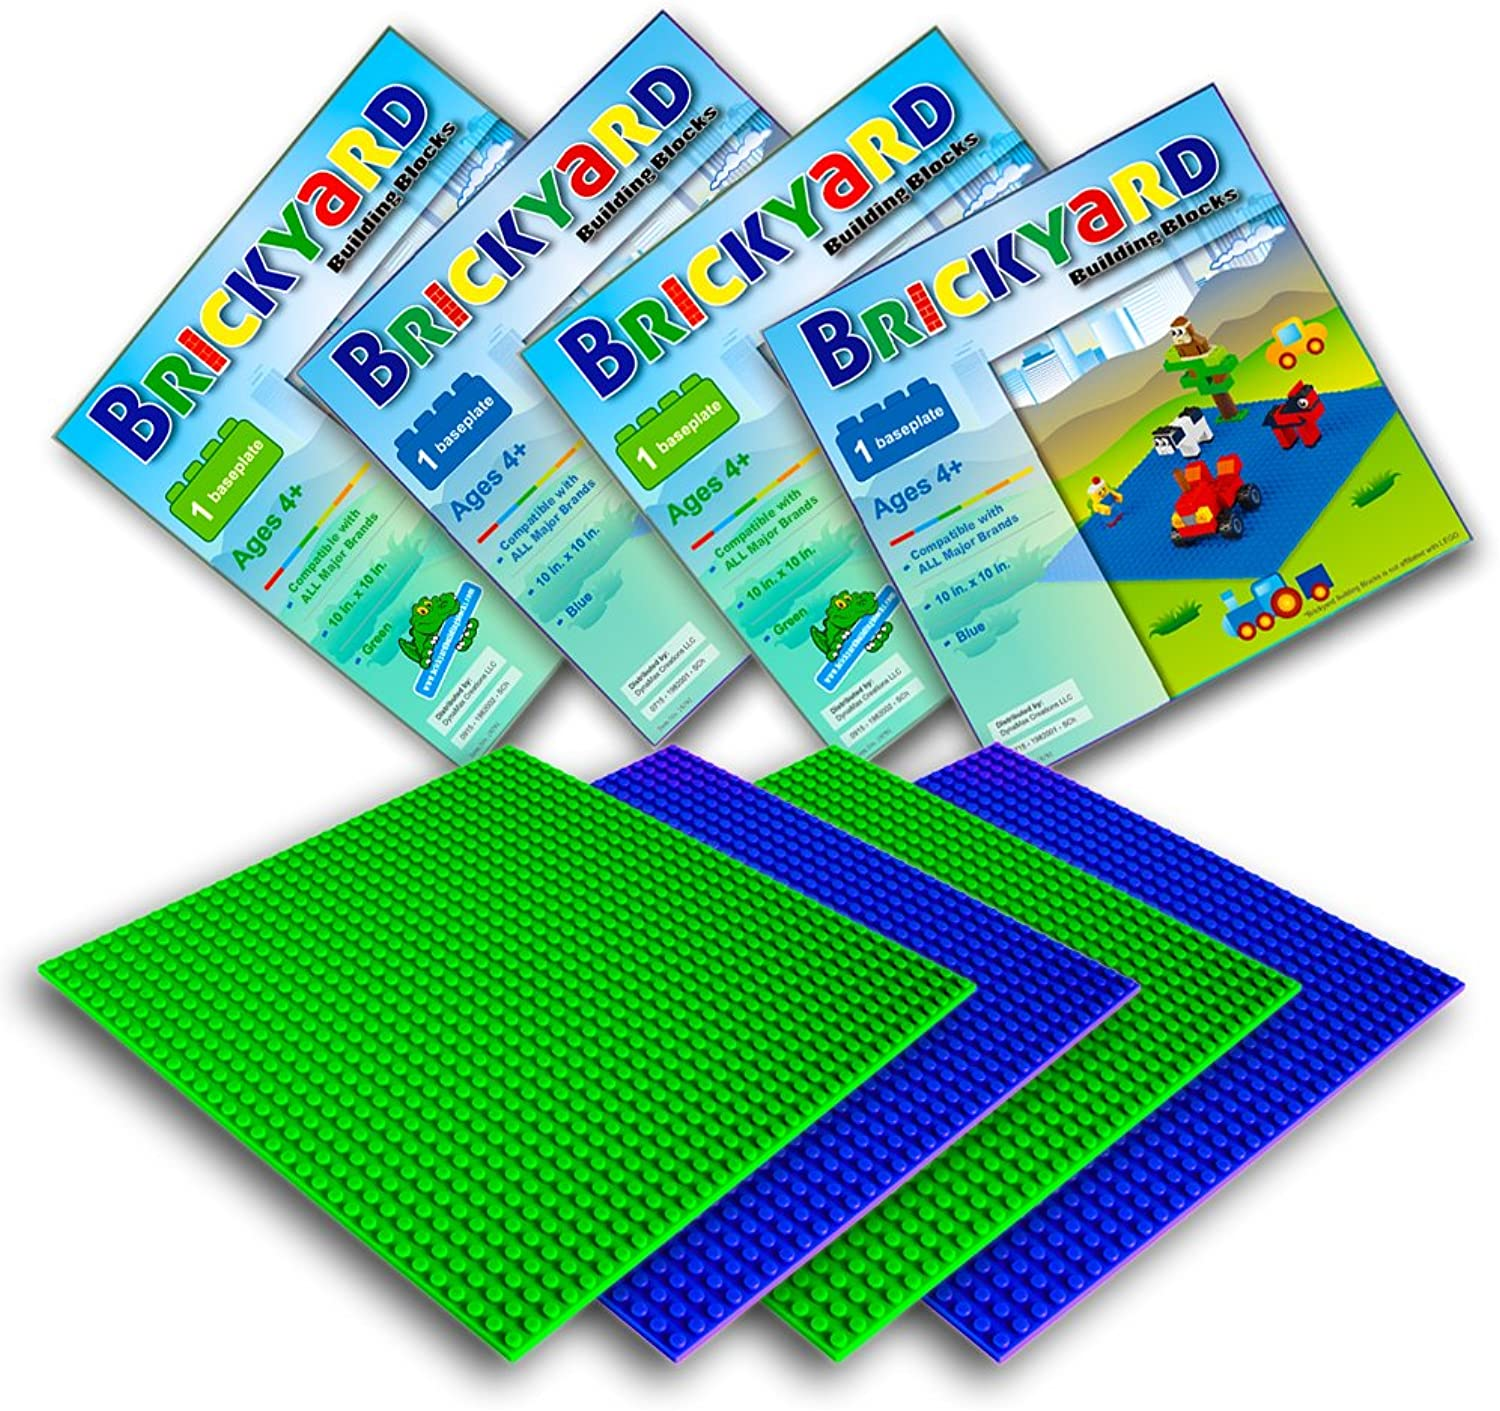 [Improved Design] 4 Baseplates, 10 x 10 Inches Large Thick Base Plates for Building Bricks by Brickyard, Perfect for Activity Table or Displaying Compatible Construction Toys (2 Green, 2 bluee)